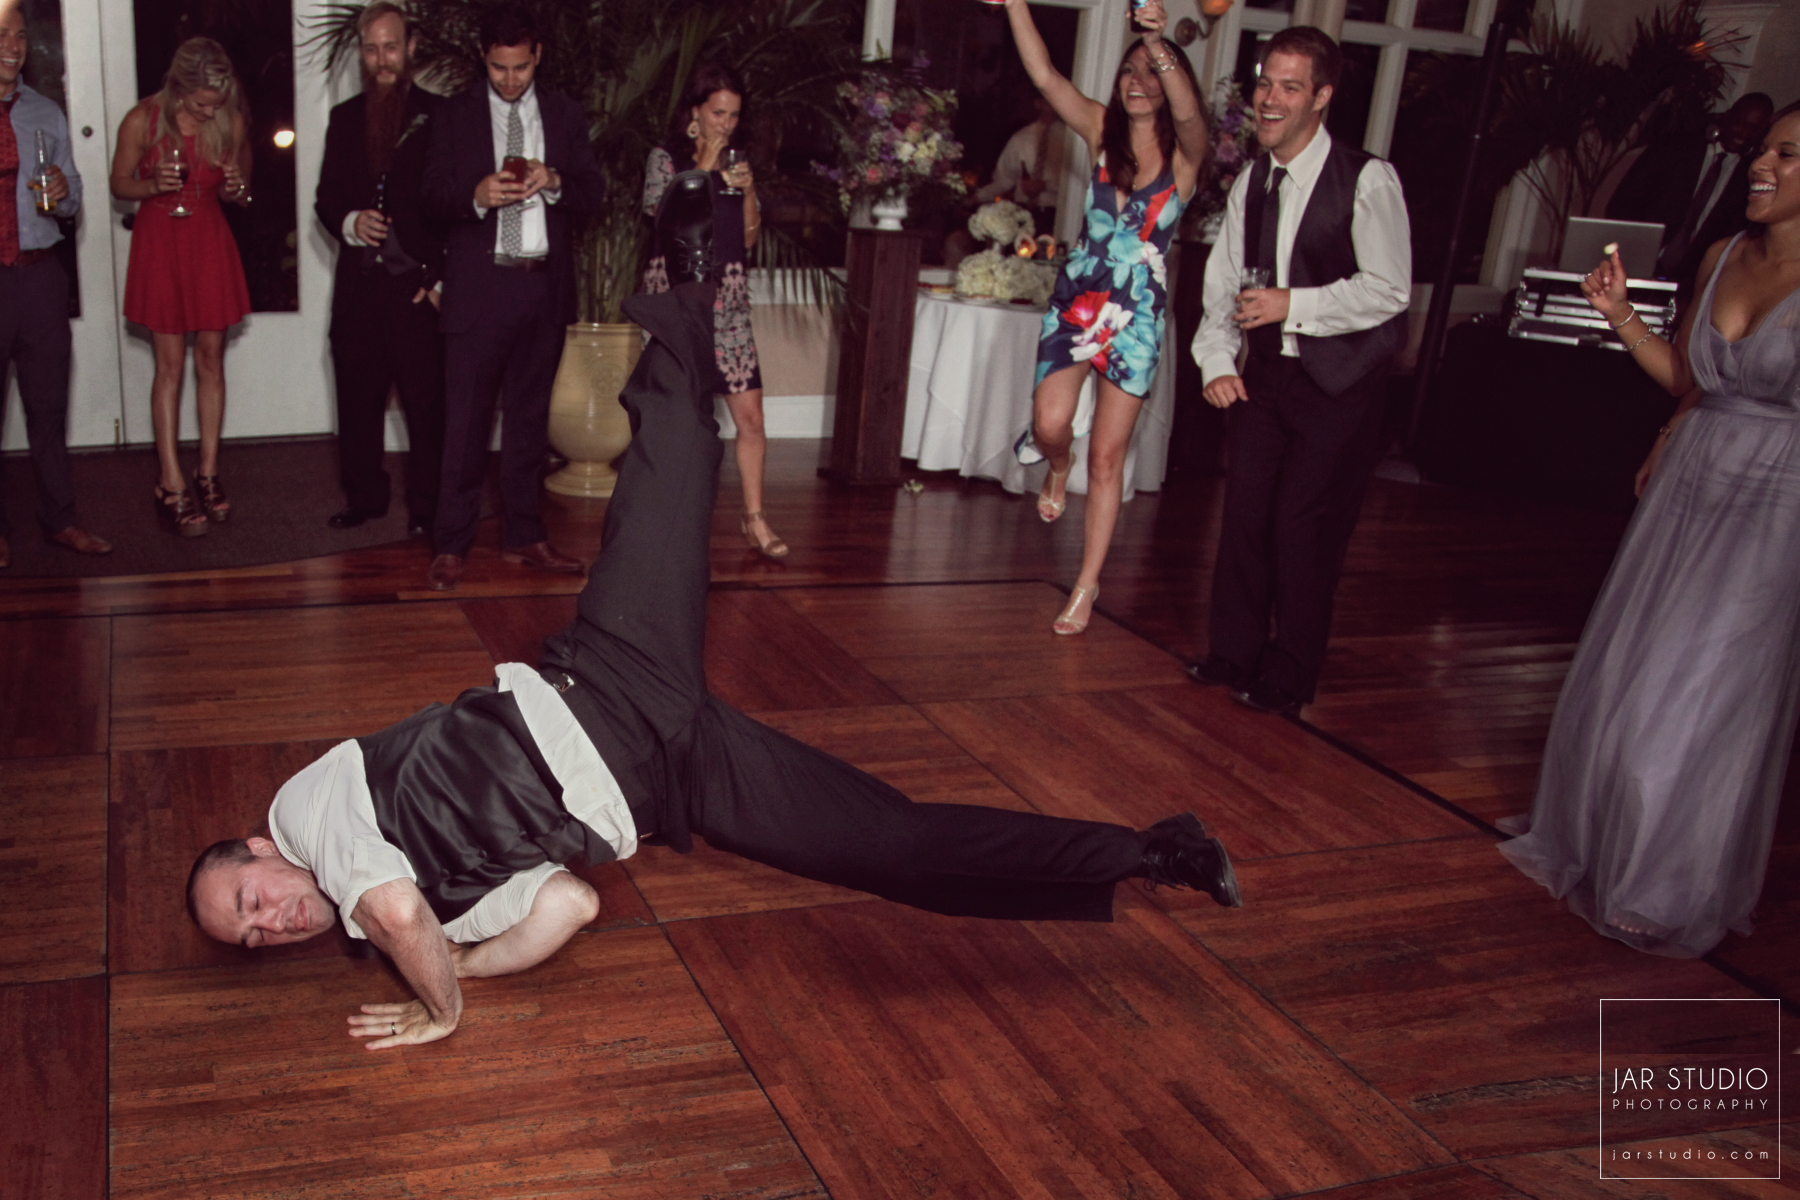 30-break-dancing-groom-jarstudio-photography.JPG